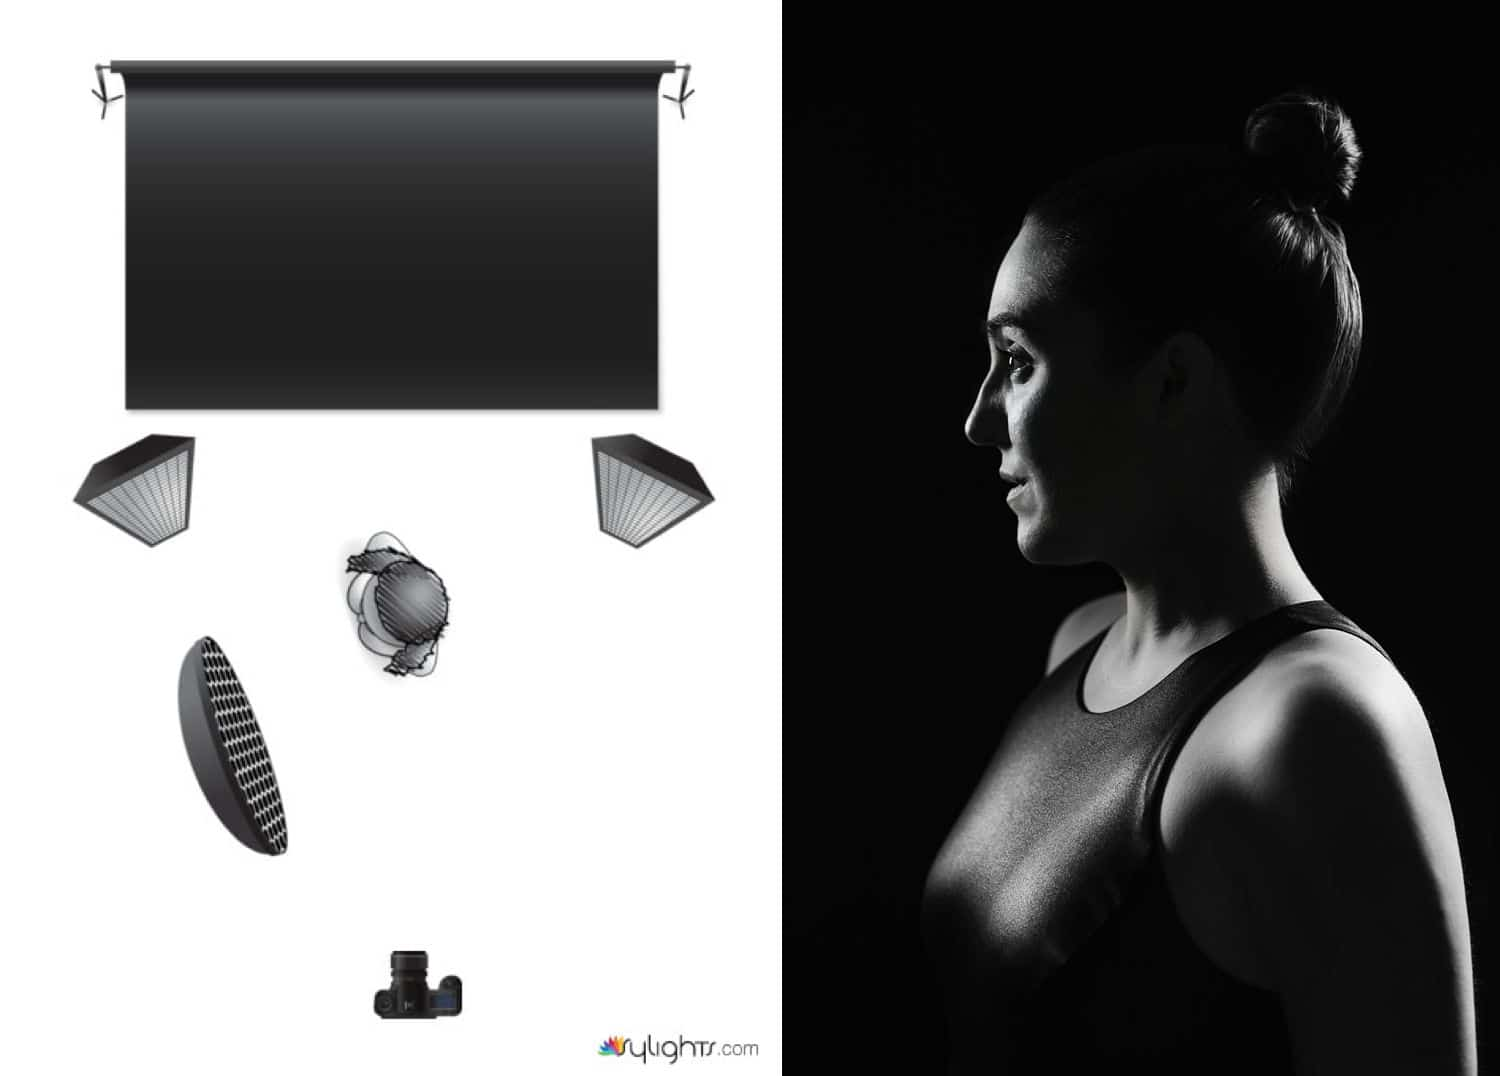 A detailed diagram demonstrates how to create this high-contrast portrait in black and white using rim lighting.